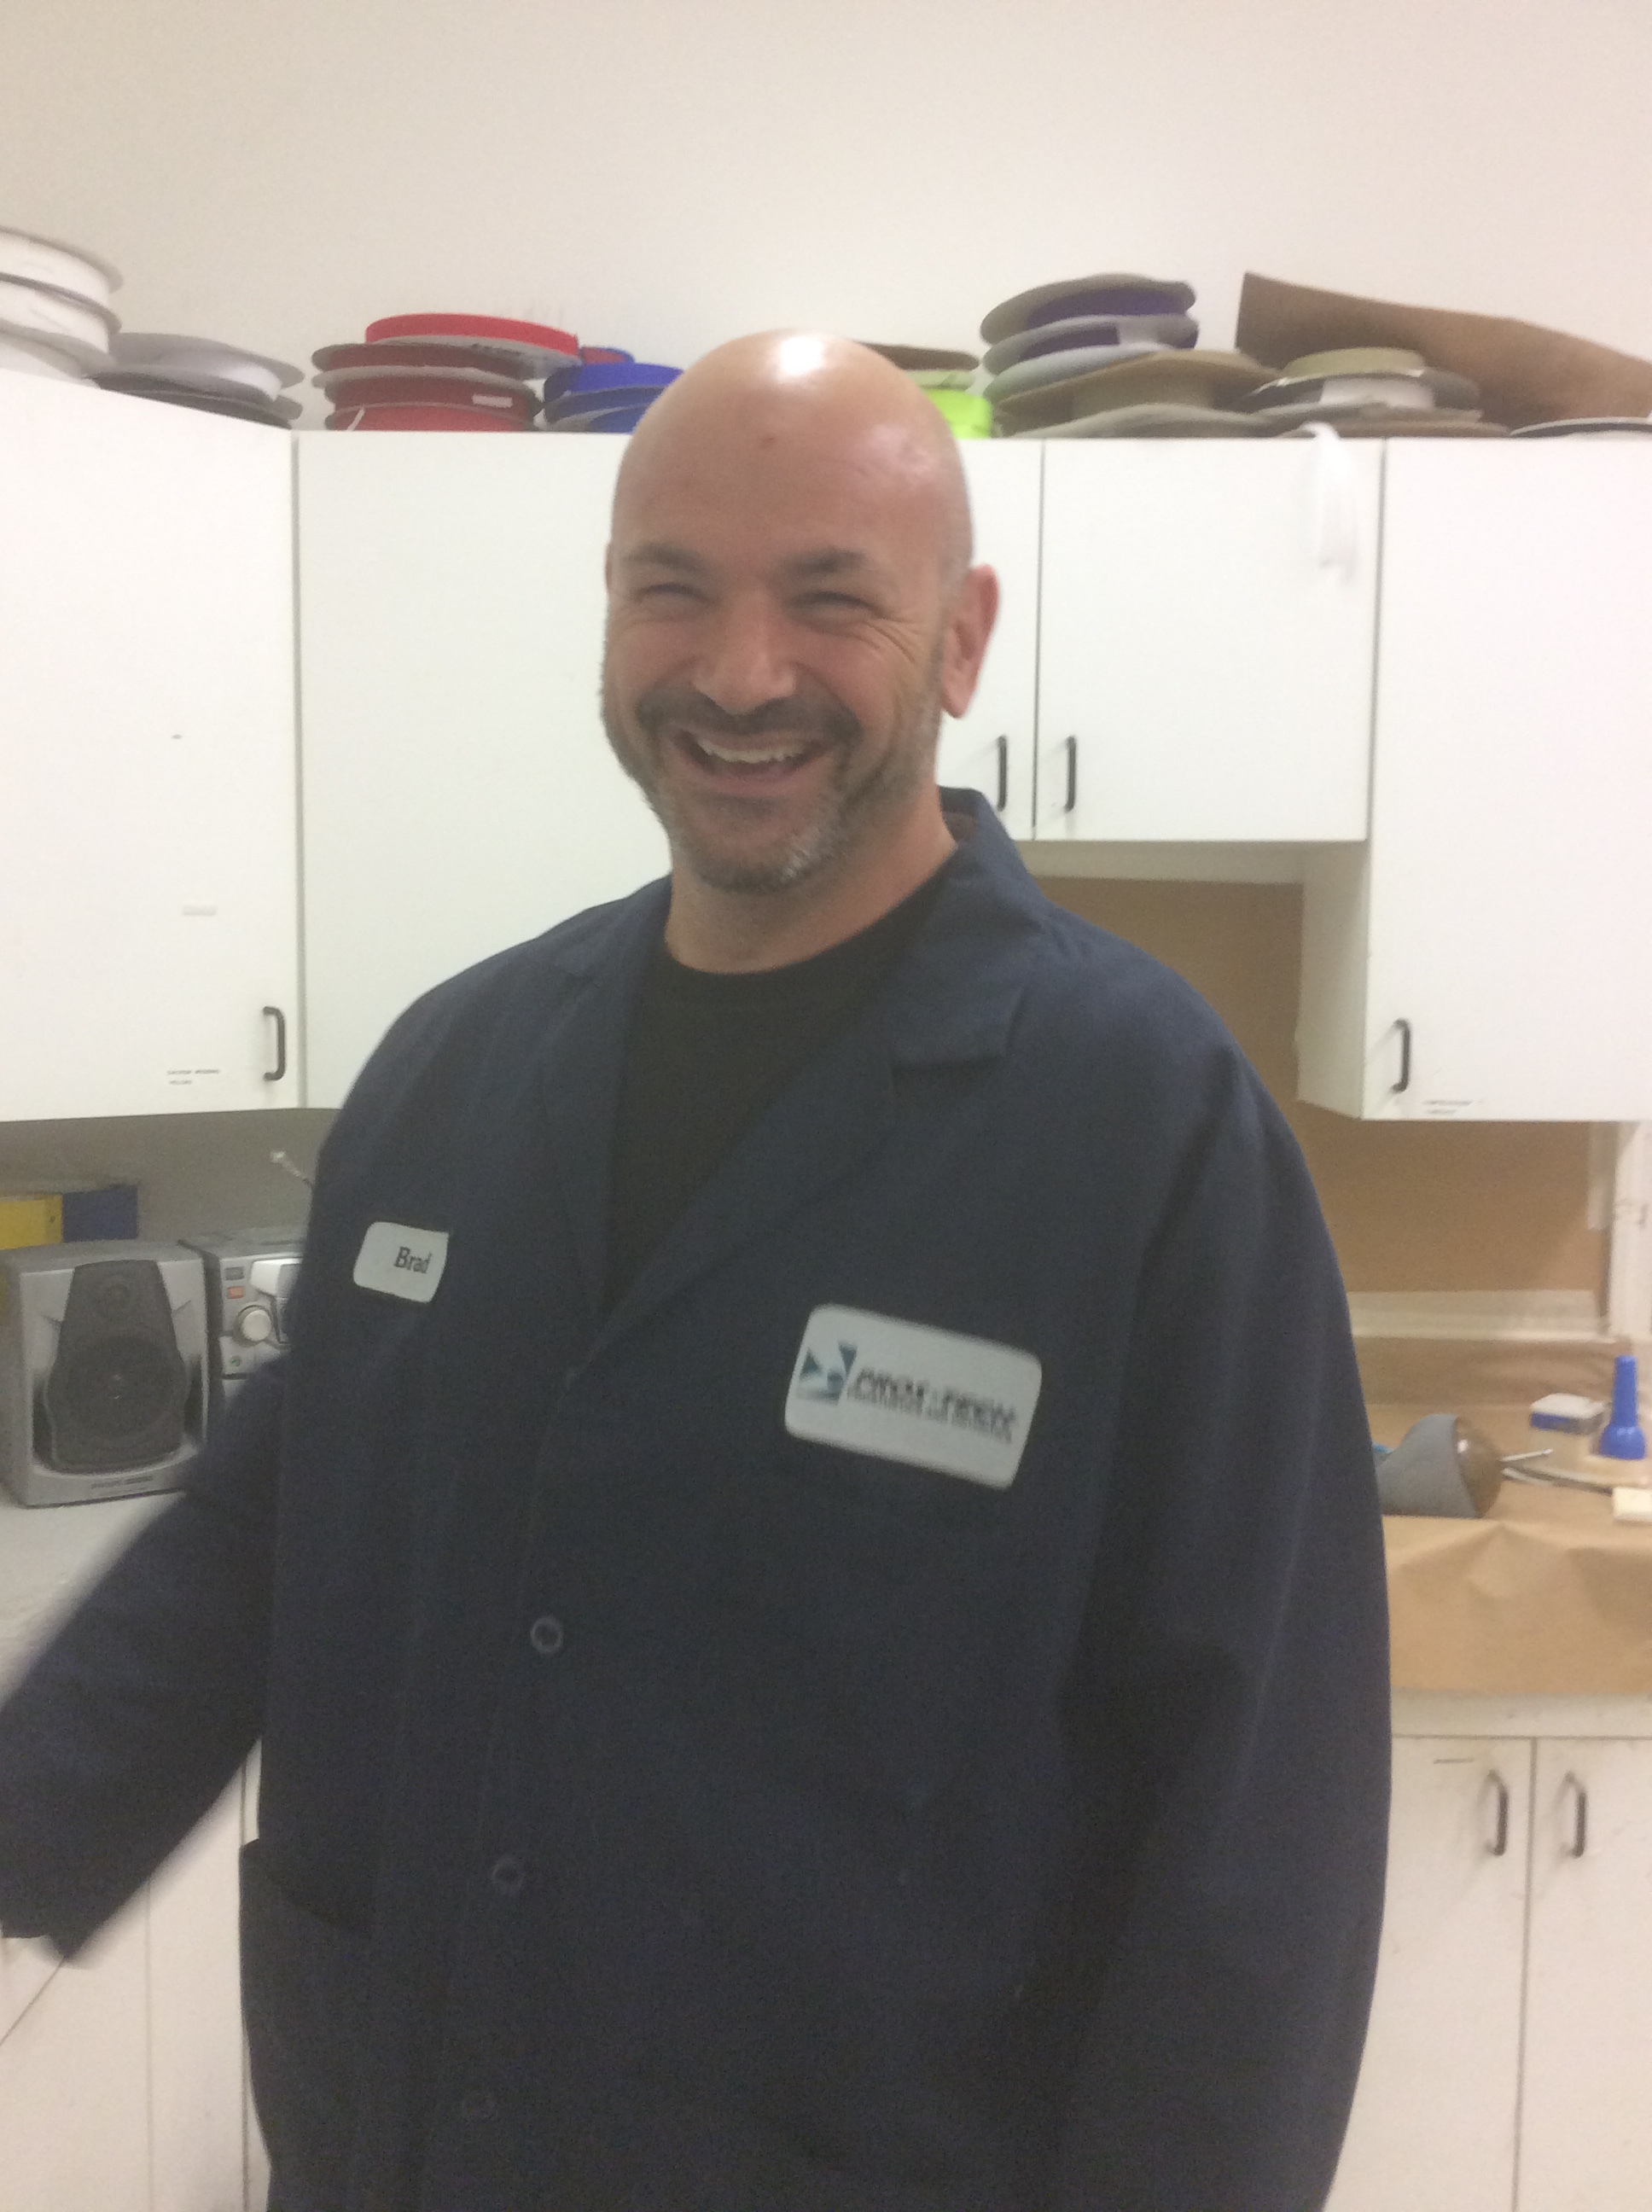 Brad Mann  C.P.A and C.P.T  23 years in Prosthetics and Orthotics  Interests: golfing and prosthetics  Hobbies: barbecueing, spending time with his family